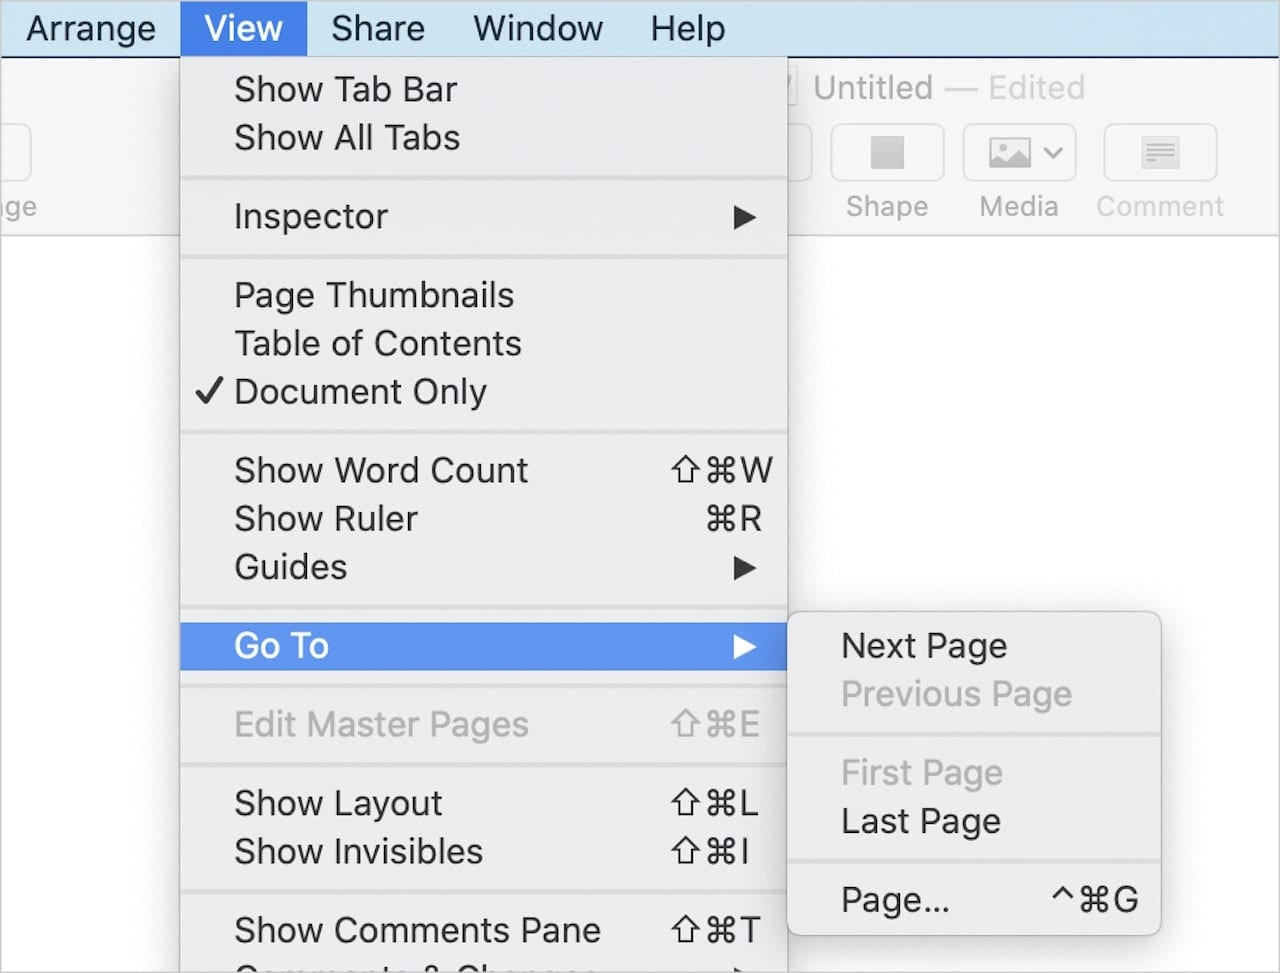 New Pages menu command: View > Go To > Page...